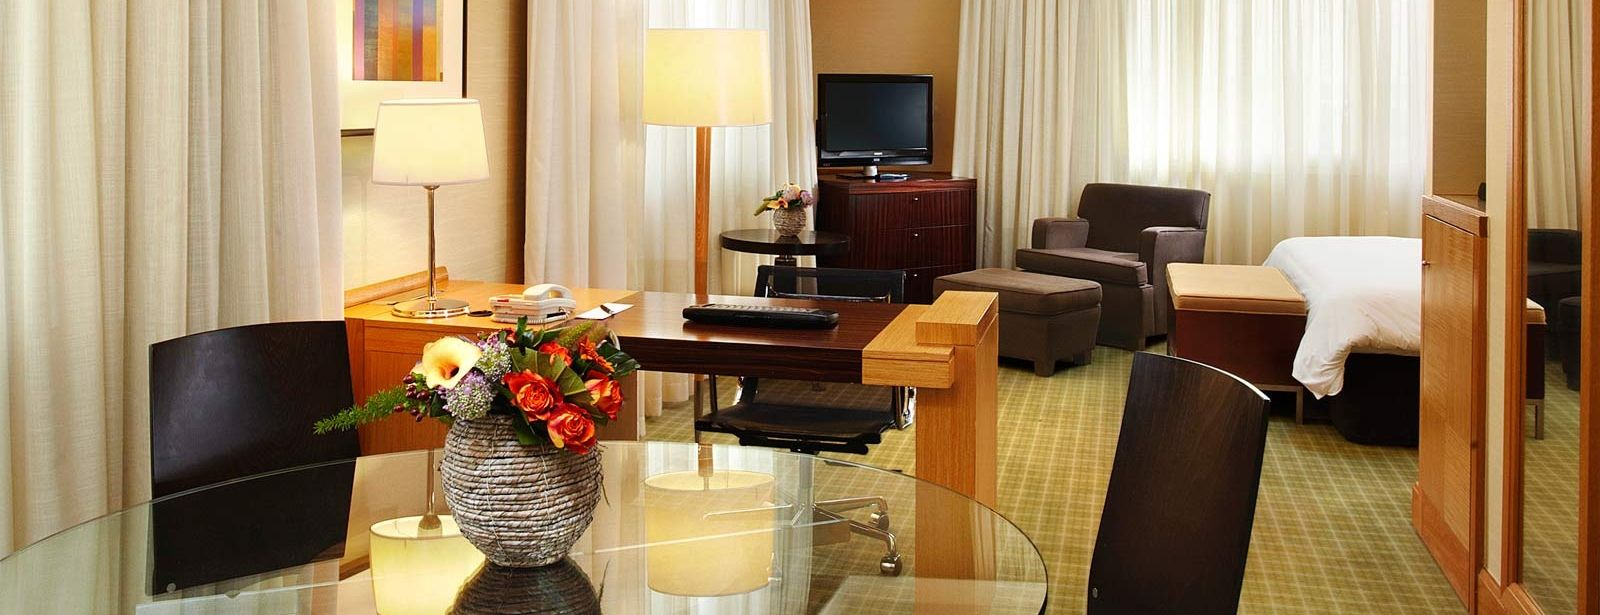 Junior Suite - Sheraton Brussels Airport Hotel